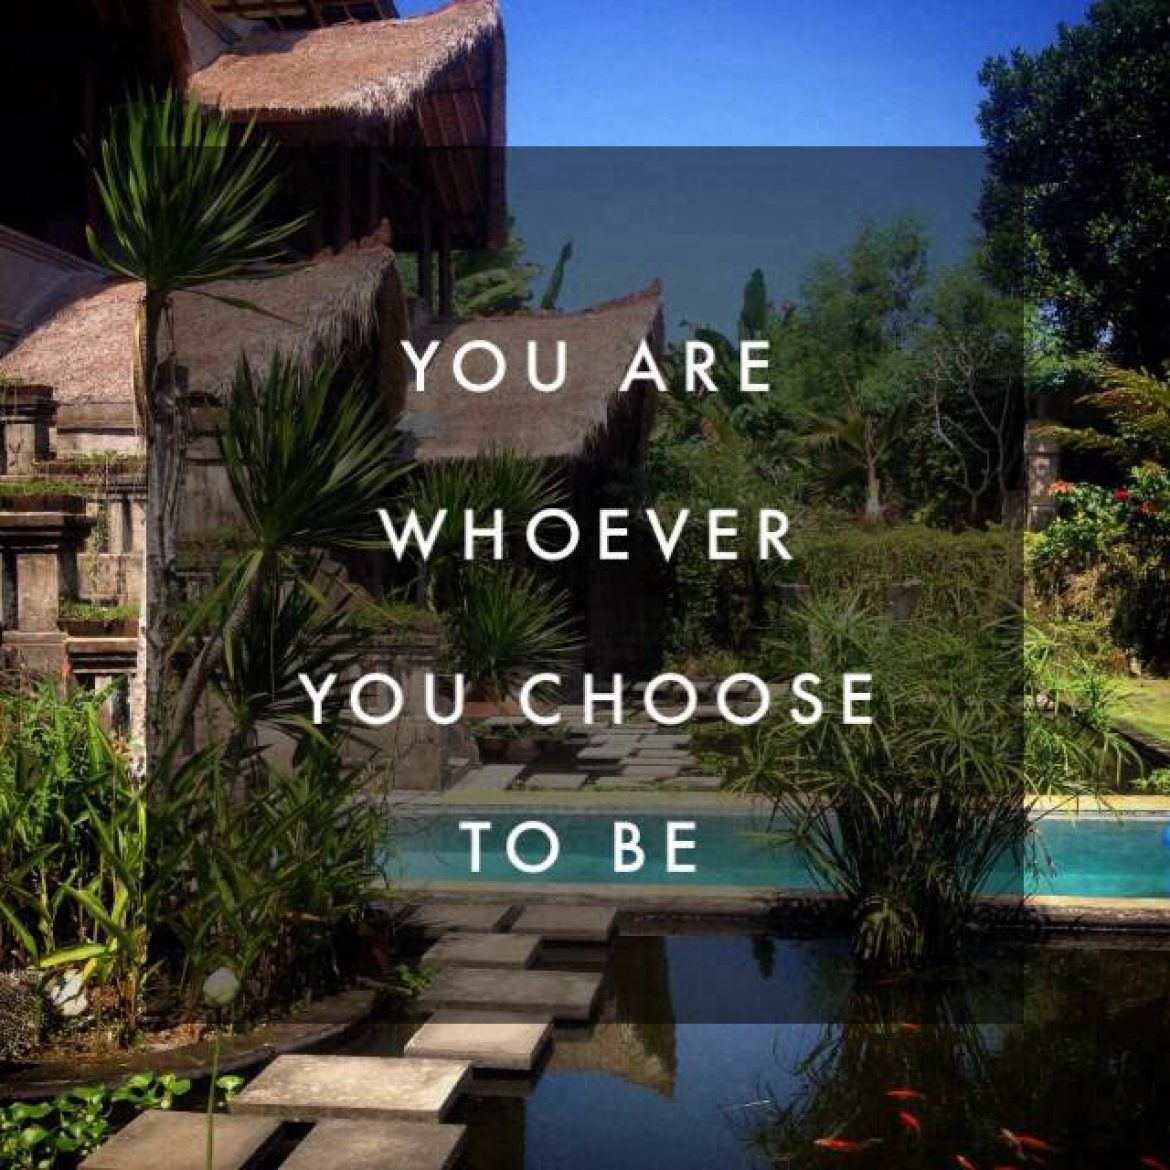 Agents of Change with Arthur Carmazzi: Living Up to Your True Identity is The Key For The Ultimate Happiness